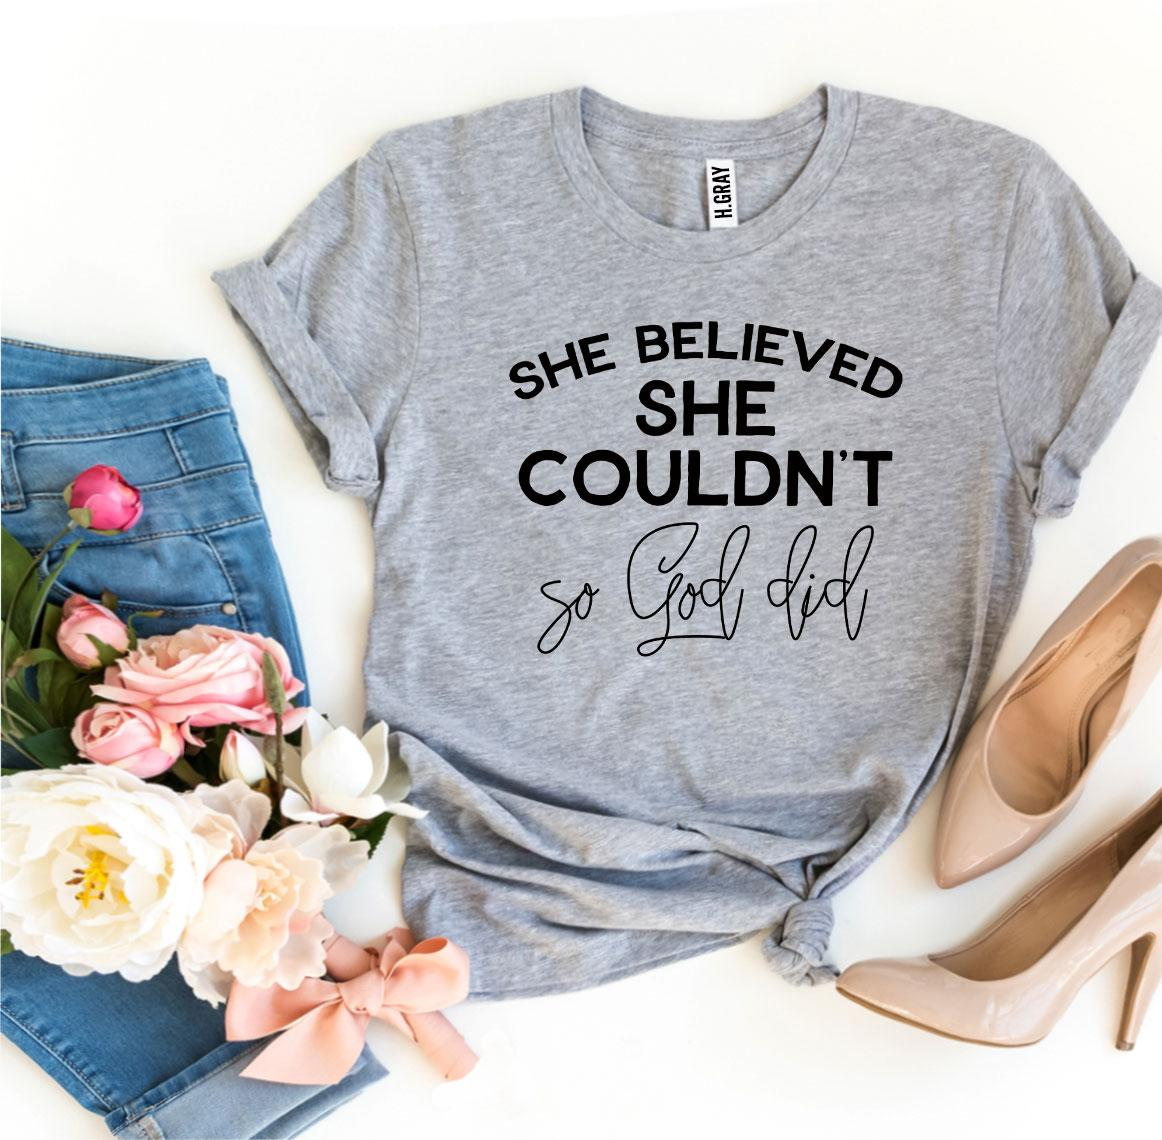 She Believed She Couldn't So God Did T-shirt - malaygauri